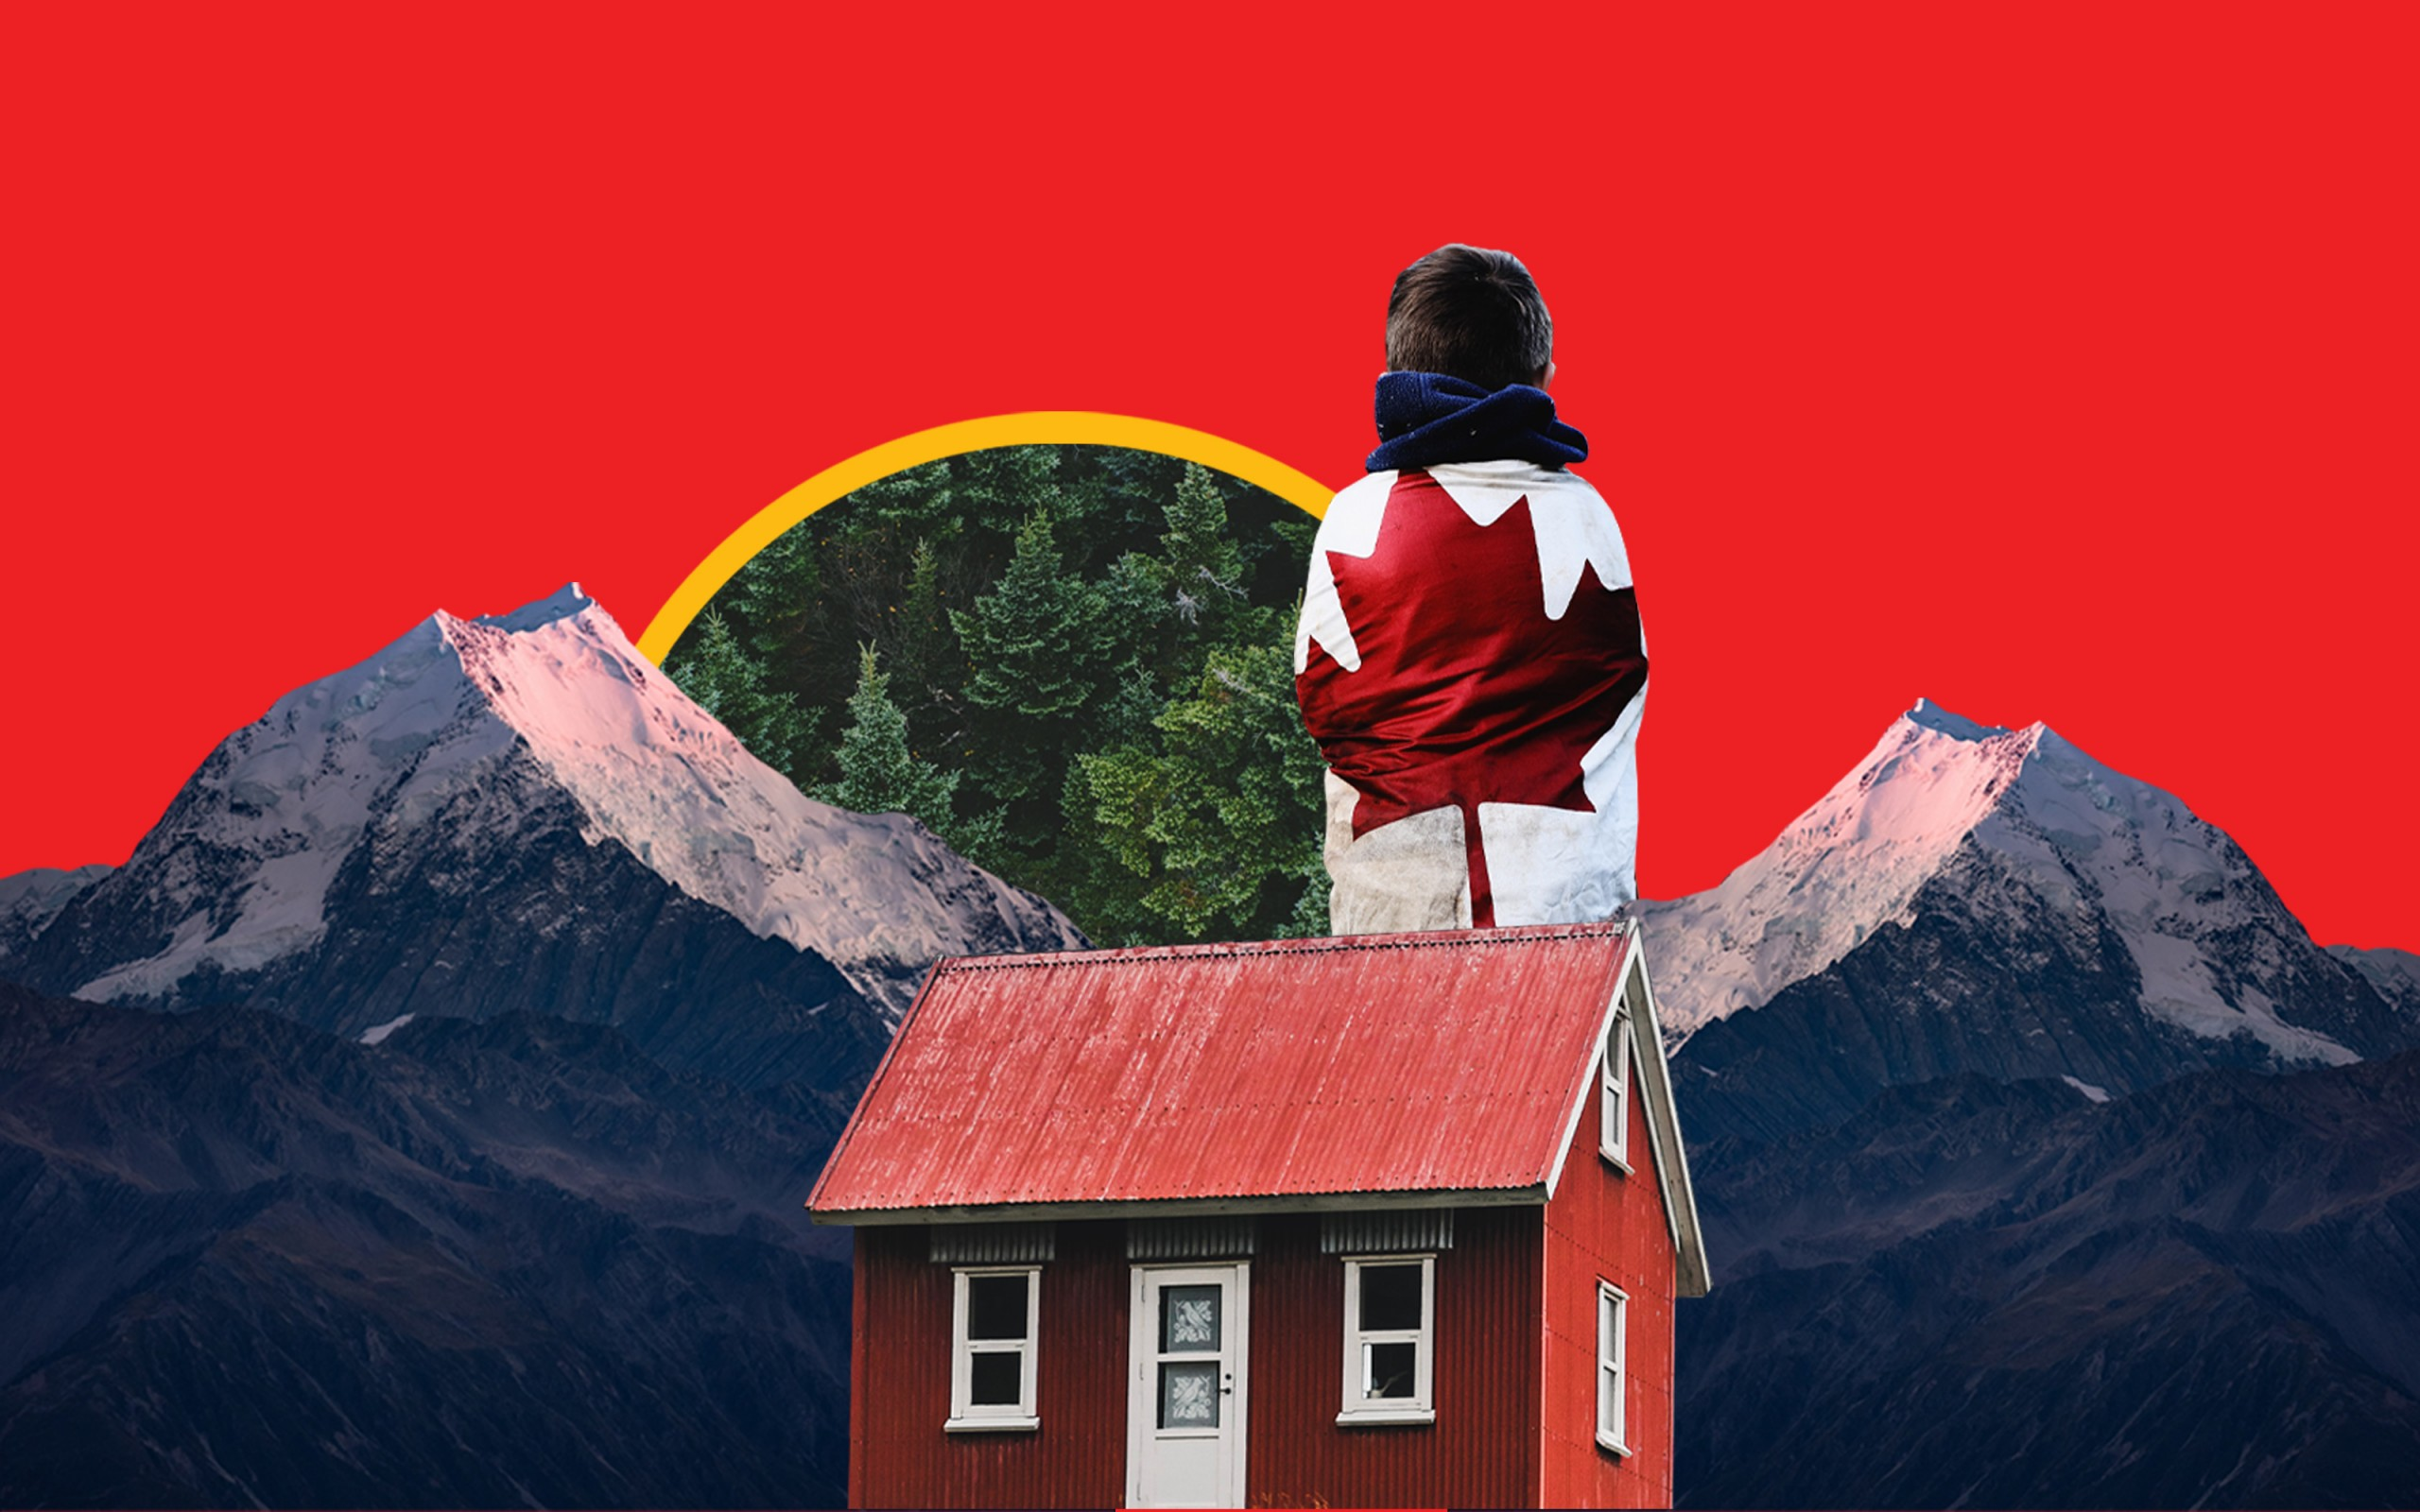 A collage of a red cabin, mountains, forests and a person wrapped in a Canadian flag.